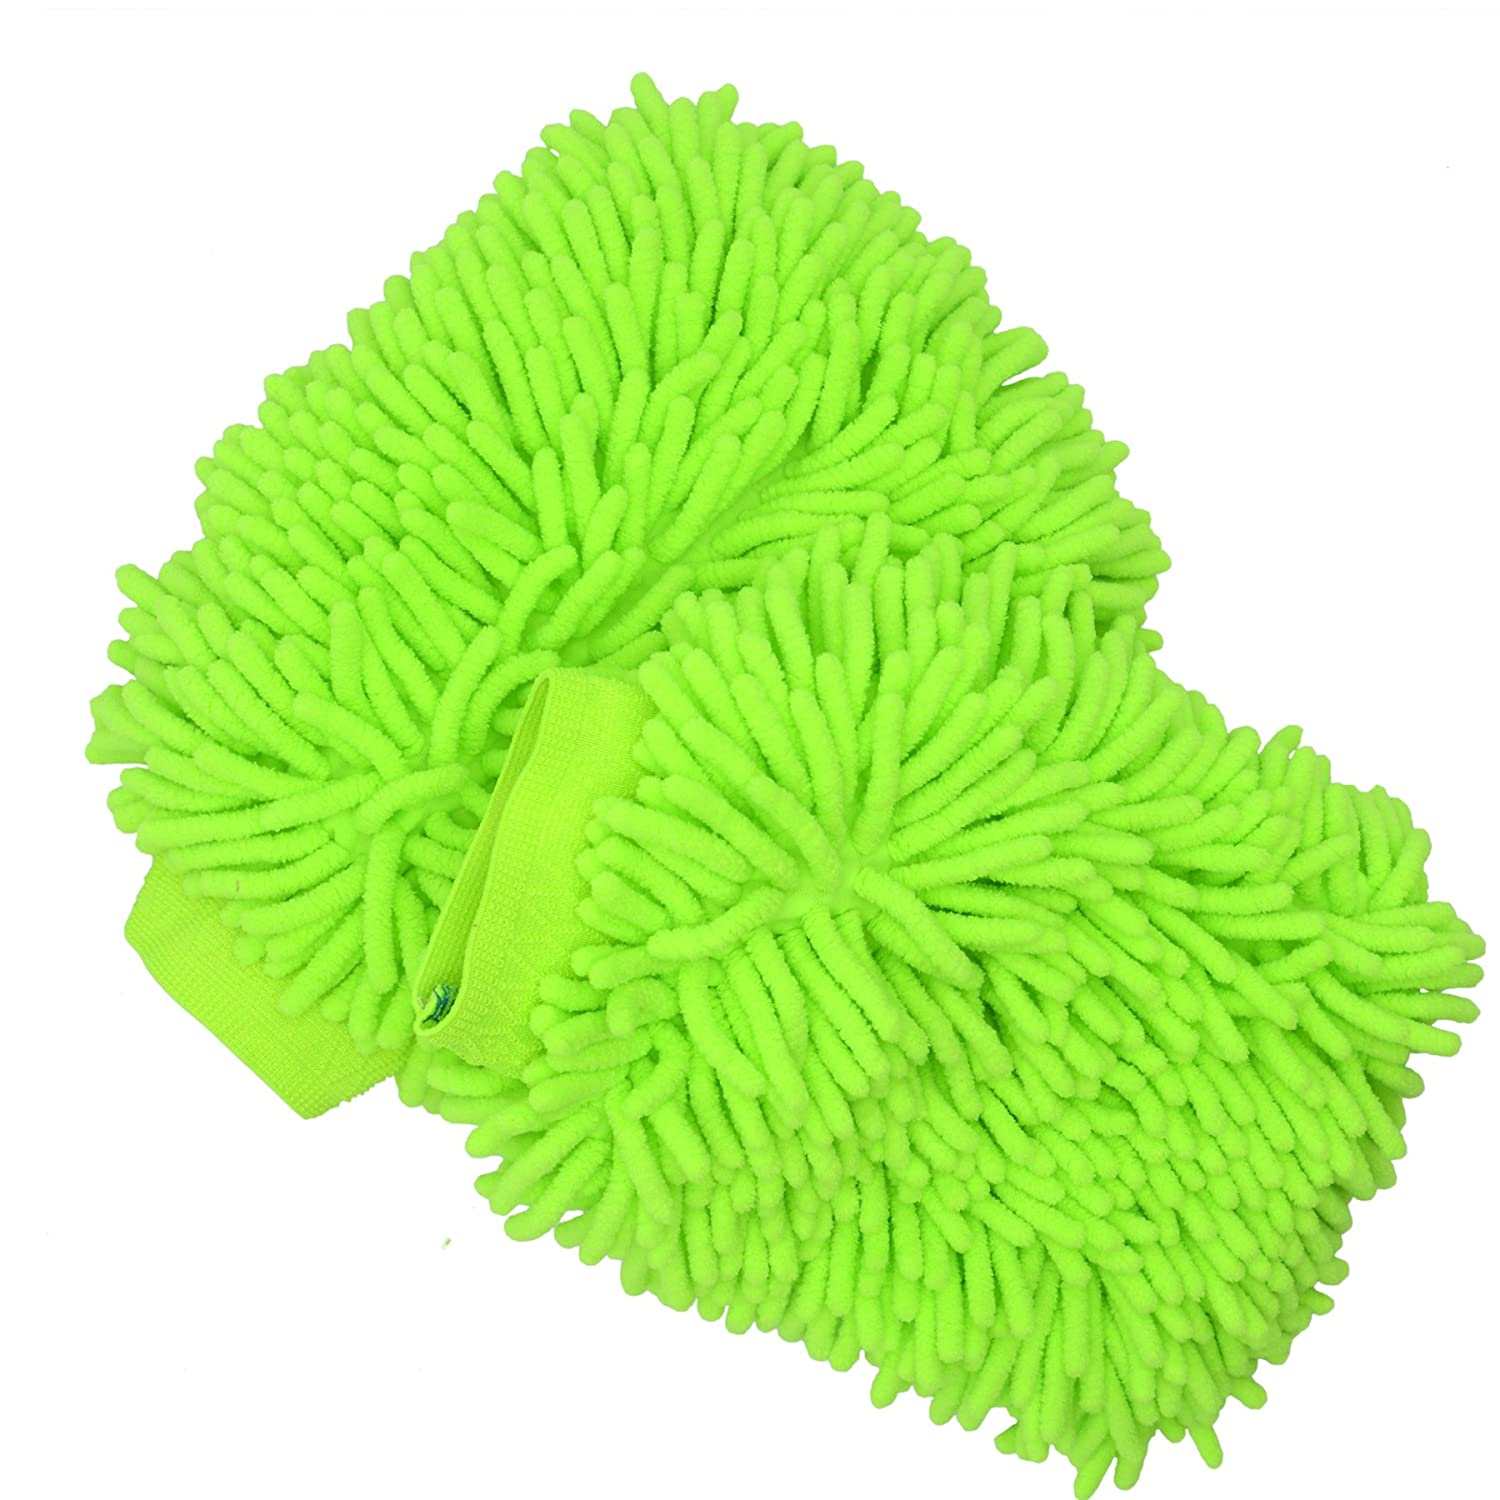 2 Pack Microfiber Car Wash Gloves, YSLF Microfiber Chenille Car Wash Mitt Car Wash Mop for Car Cleaning